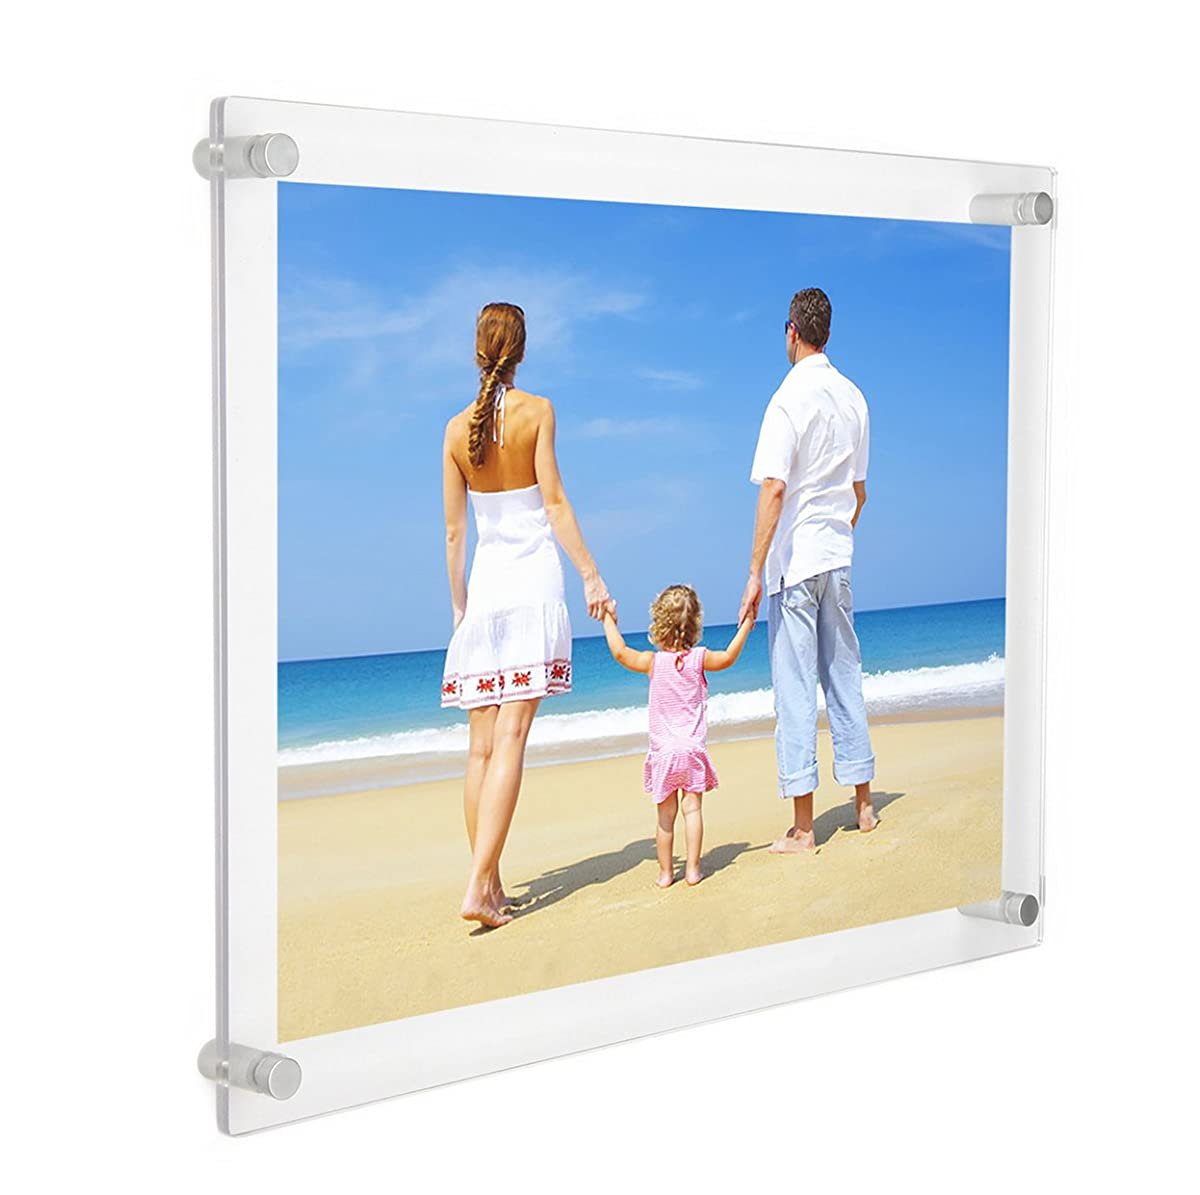 NIUBEE 11x14 Clear Acrylic Wall Mount Floating Frameless Picture ...